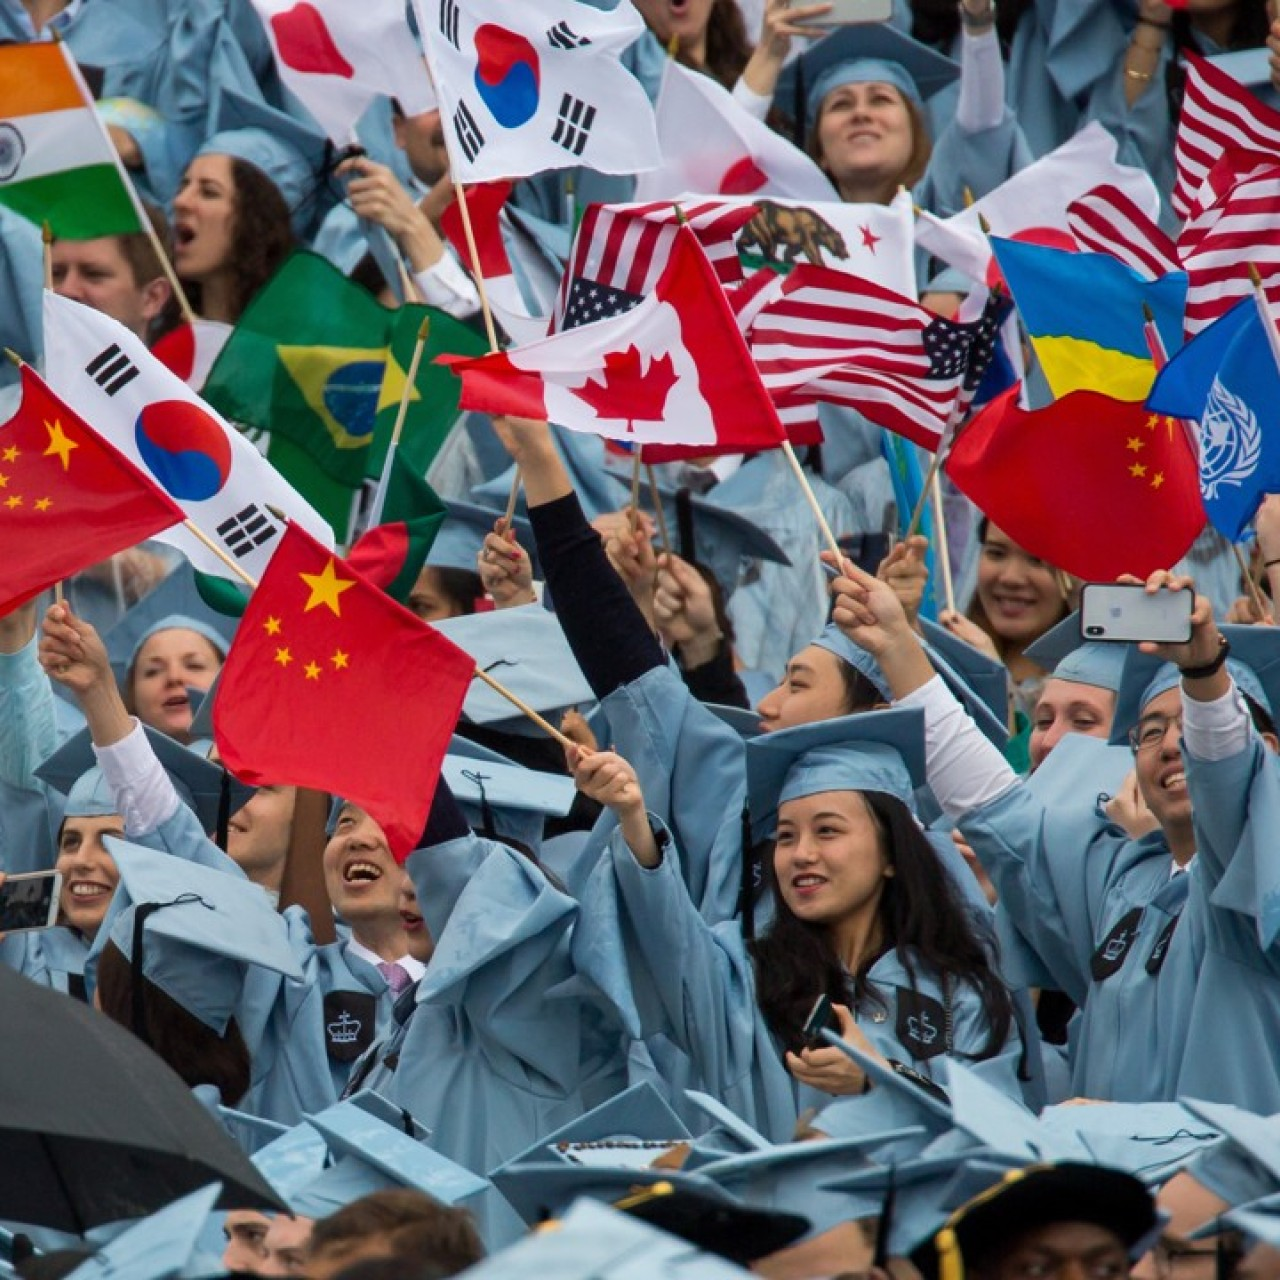 Every international student will get a green card, says US